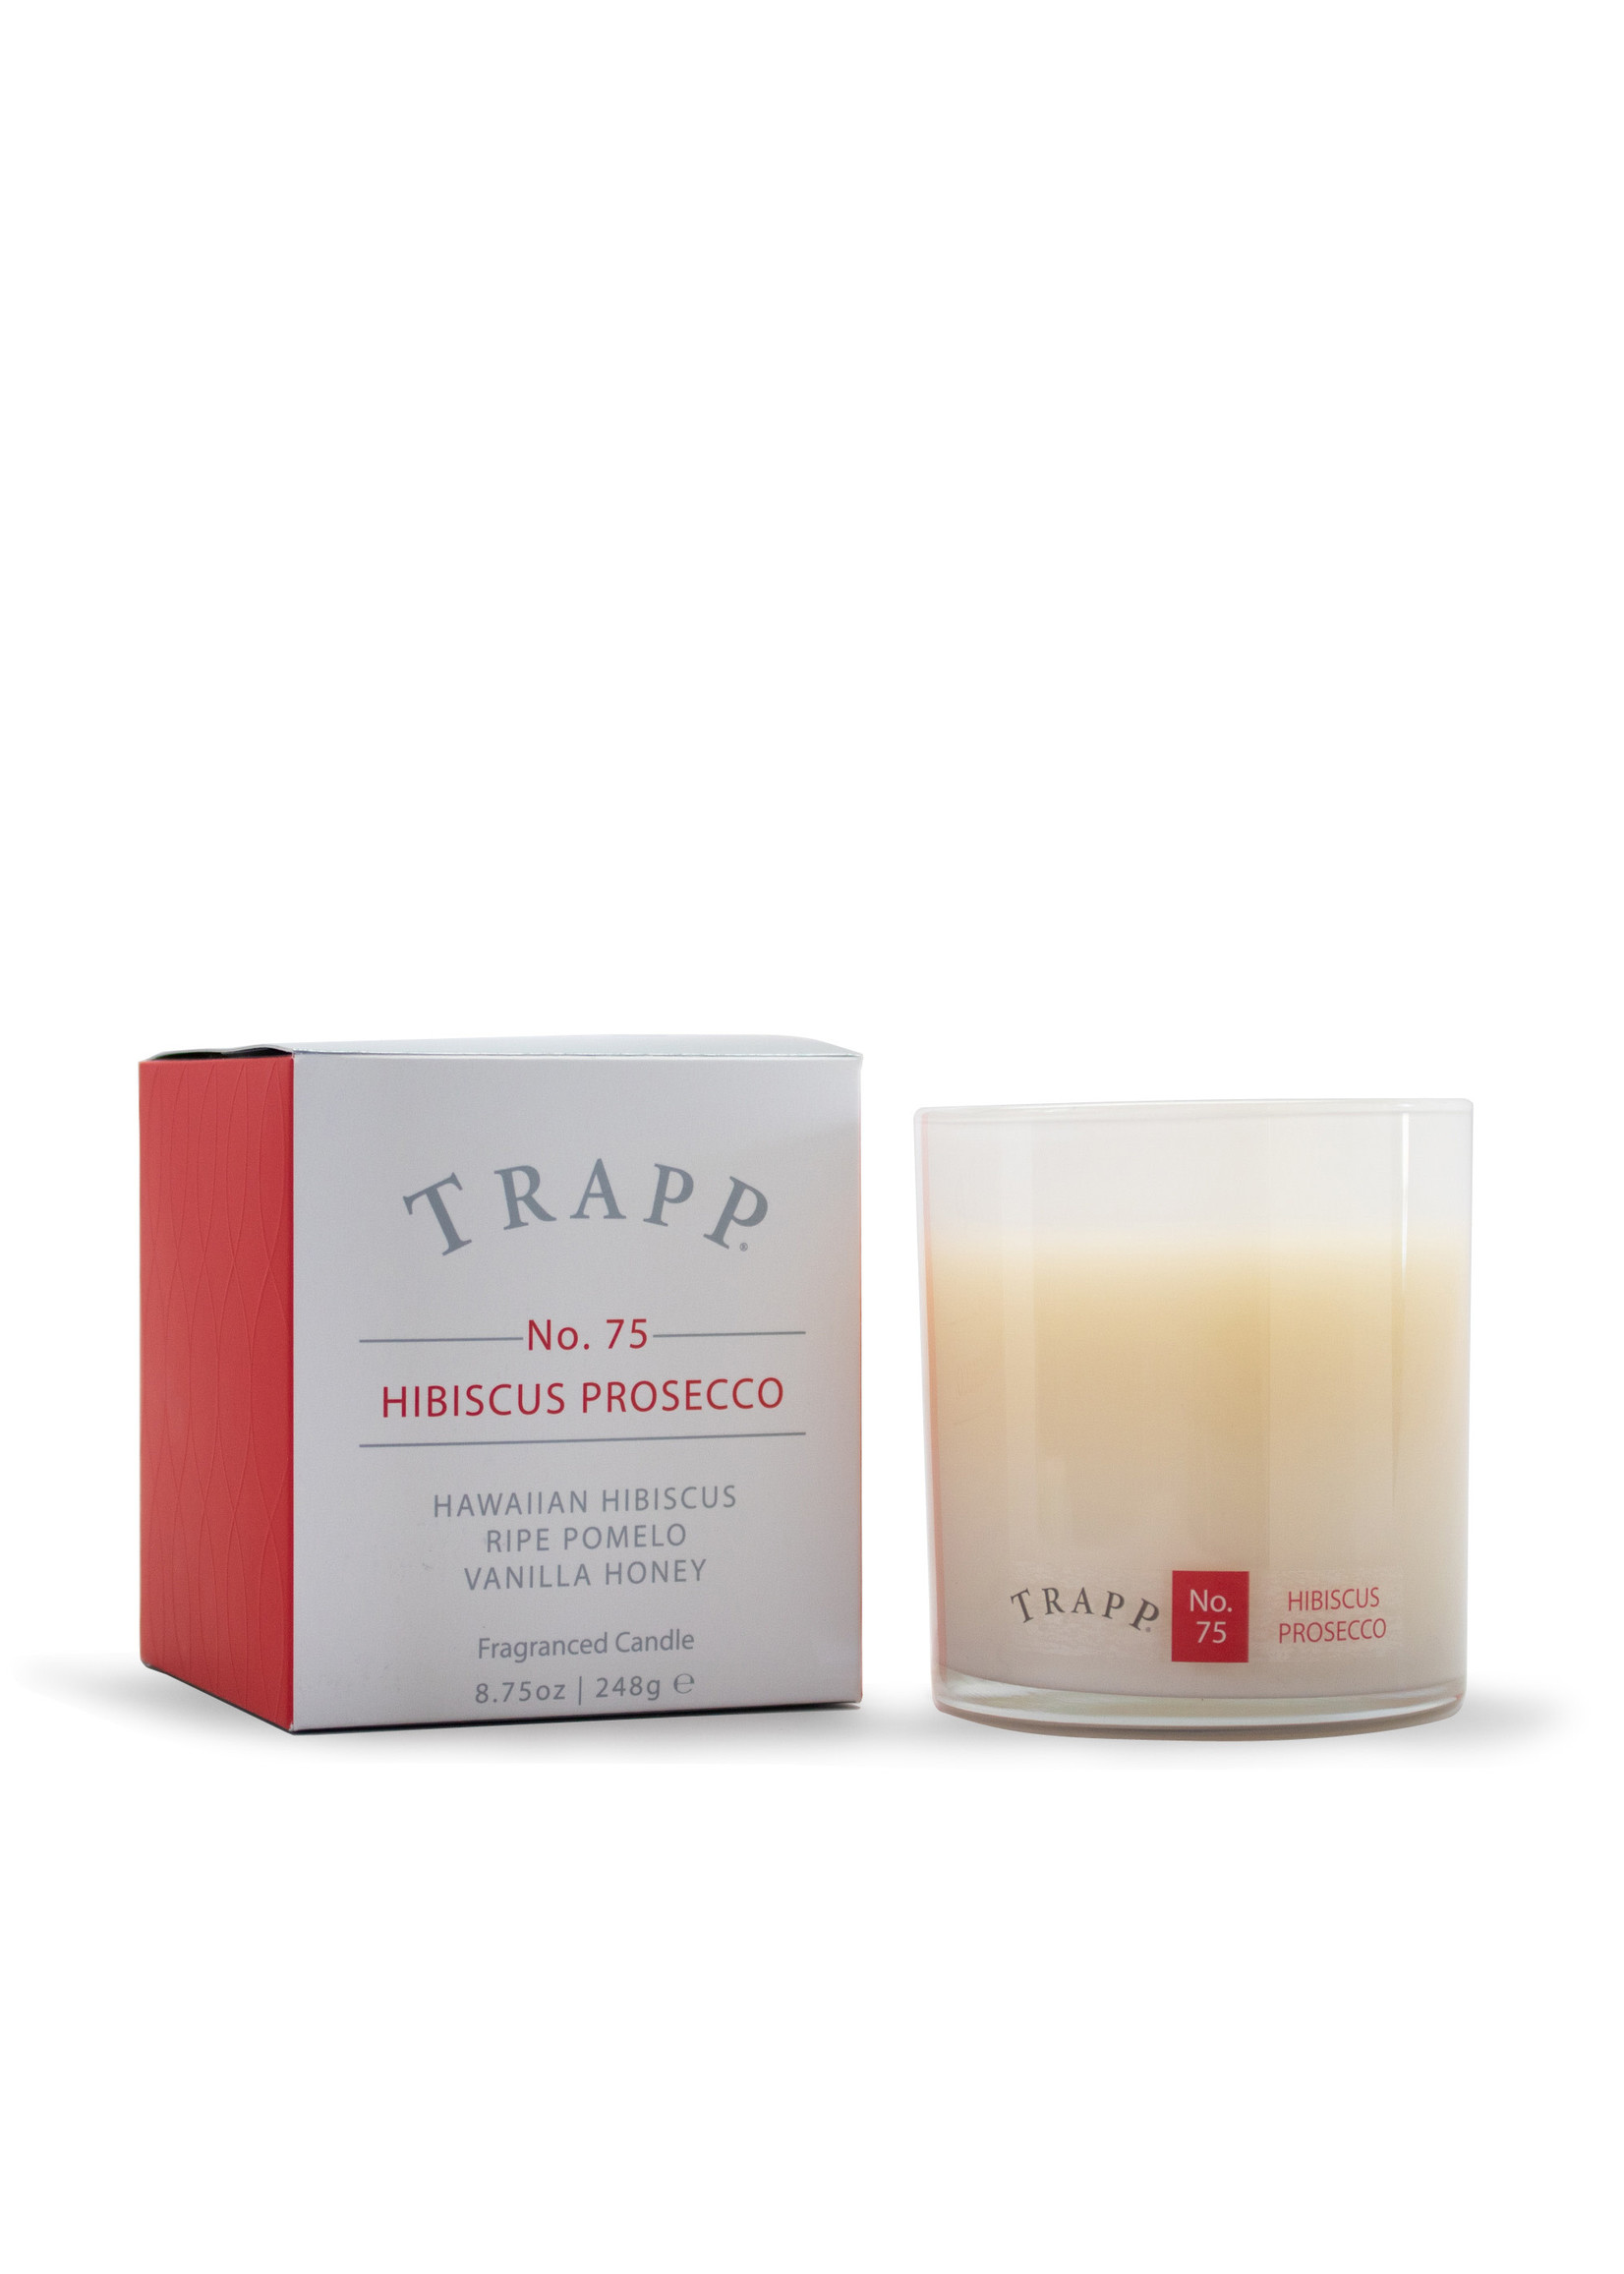 Trapp Candles Ambiance Collection - No. 75 Hibiscus Prosecco - 8.75oz. Poured Candle